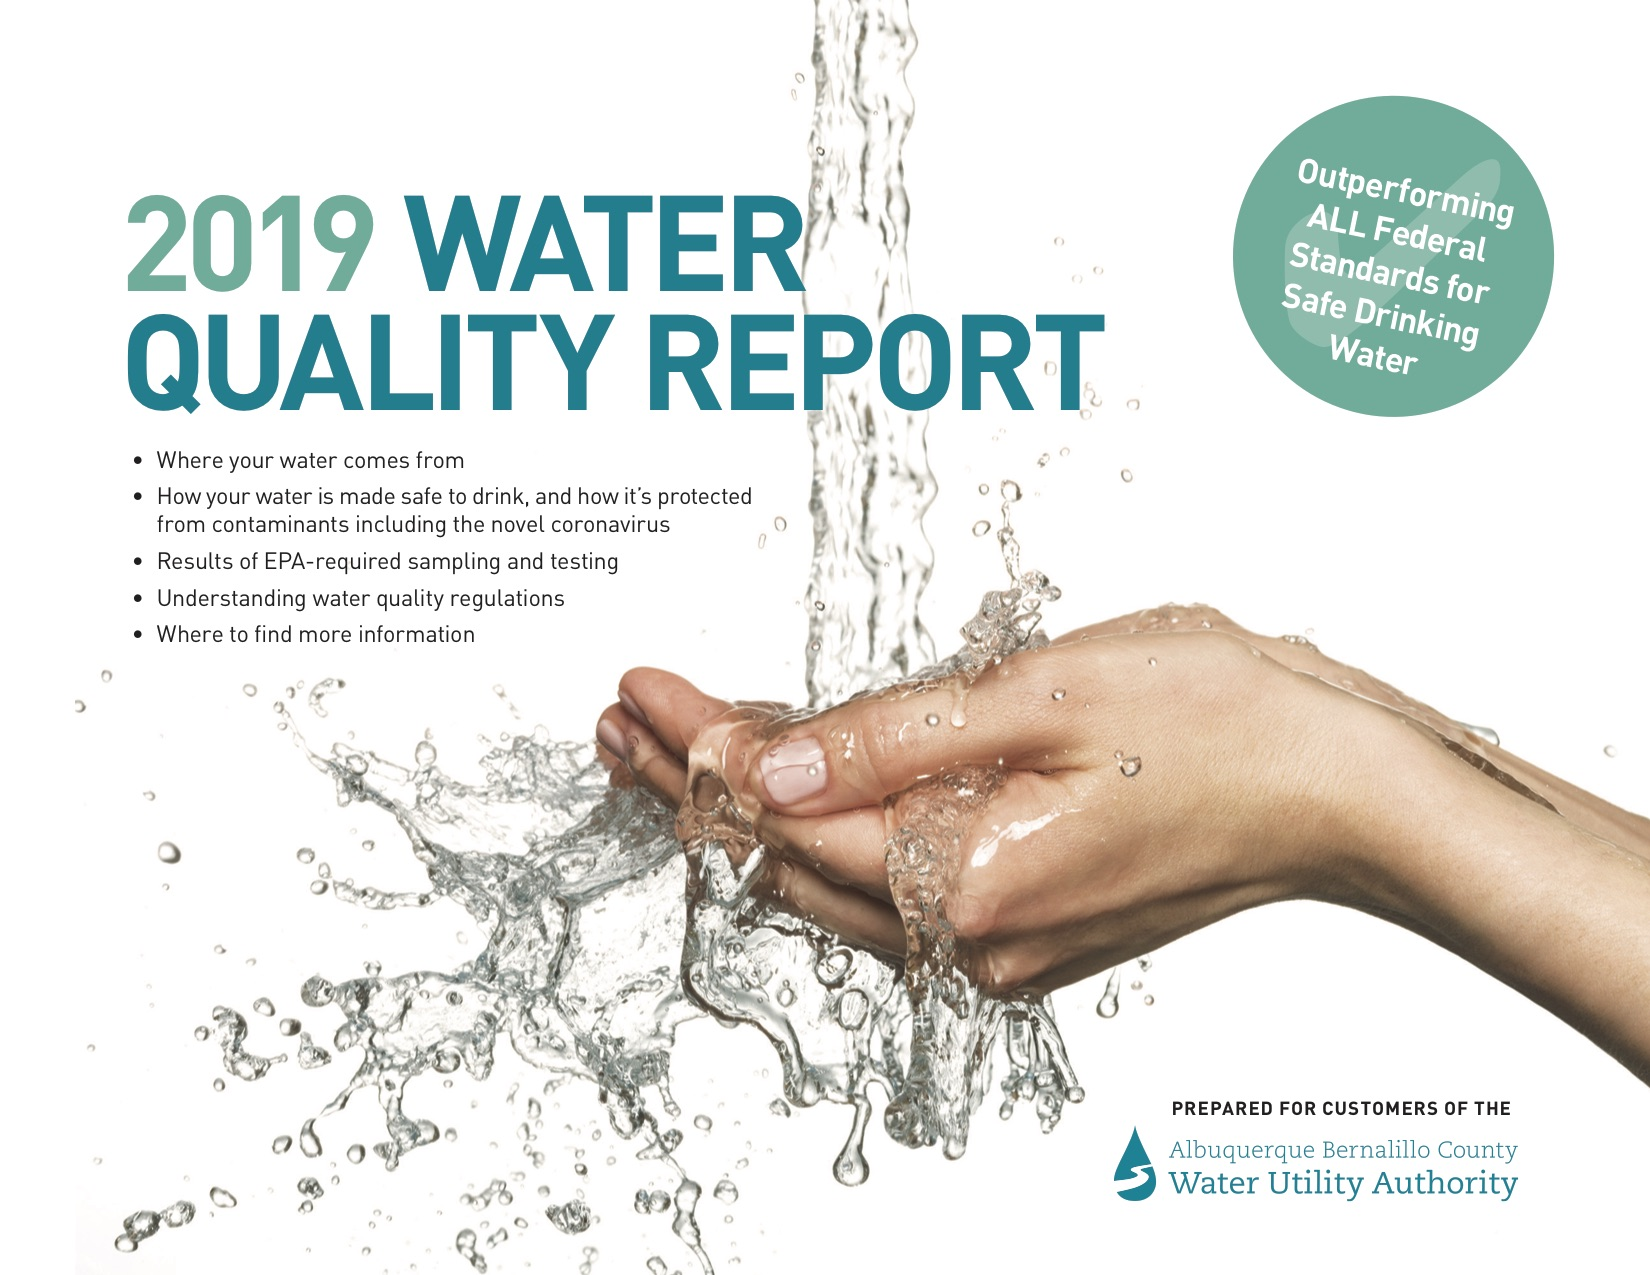 MetroABQ 2019 Water Quality Report